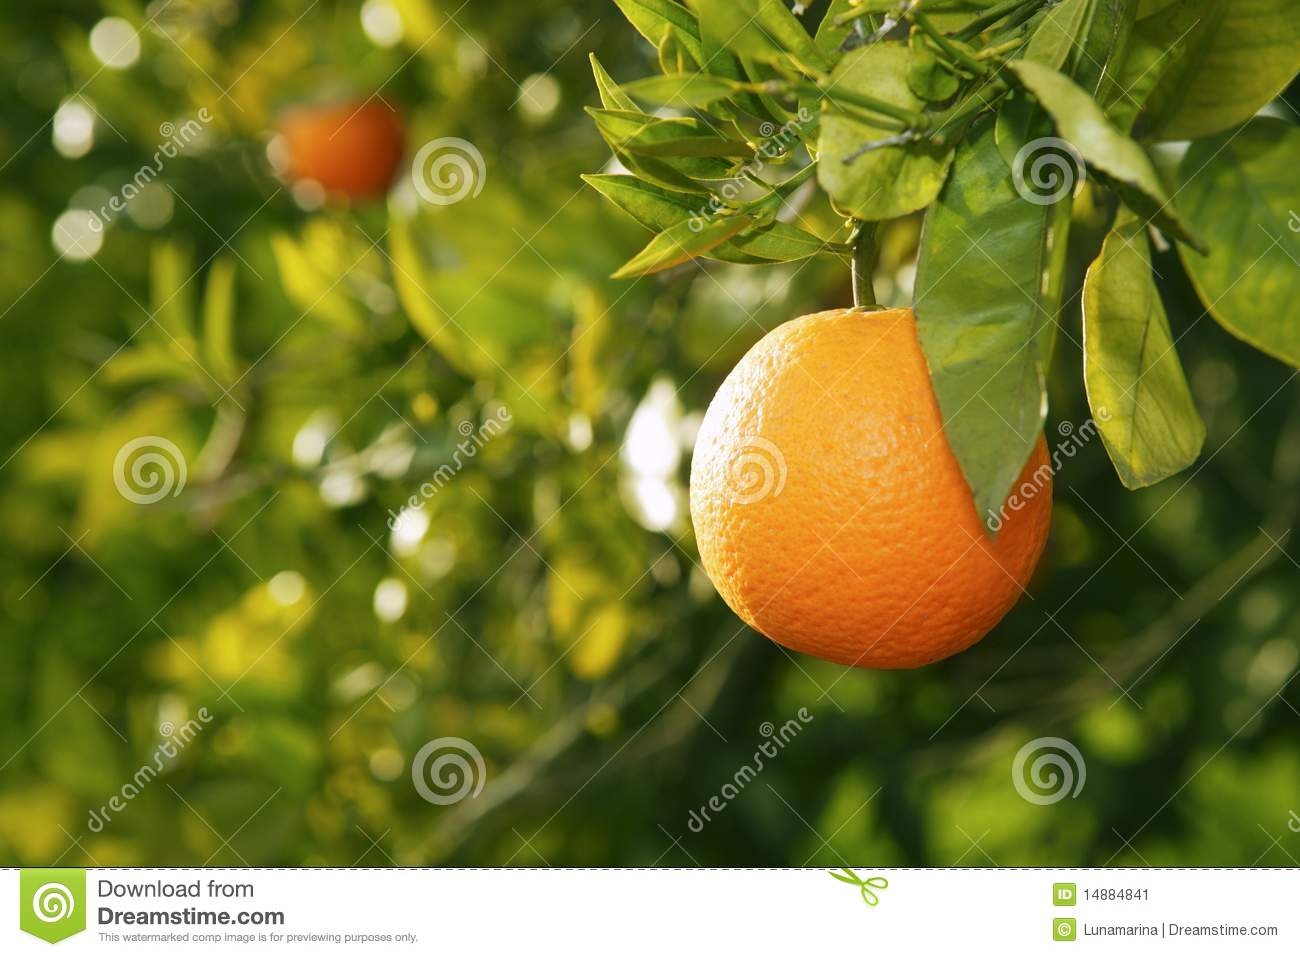 Arbre fruitier orange avant moisson espagne image stock for Arbre fruitier